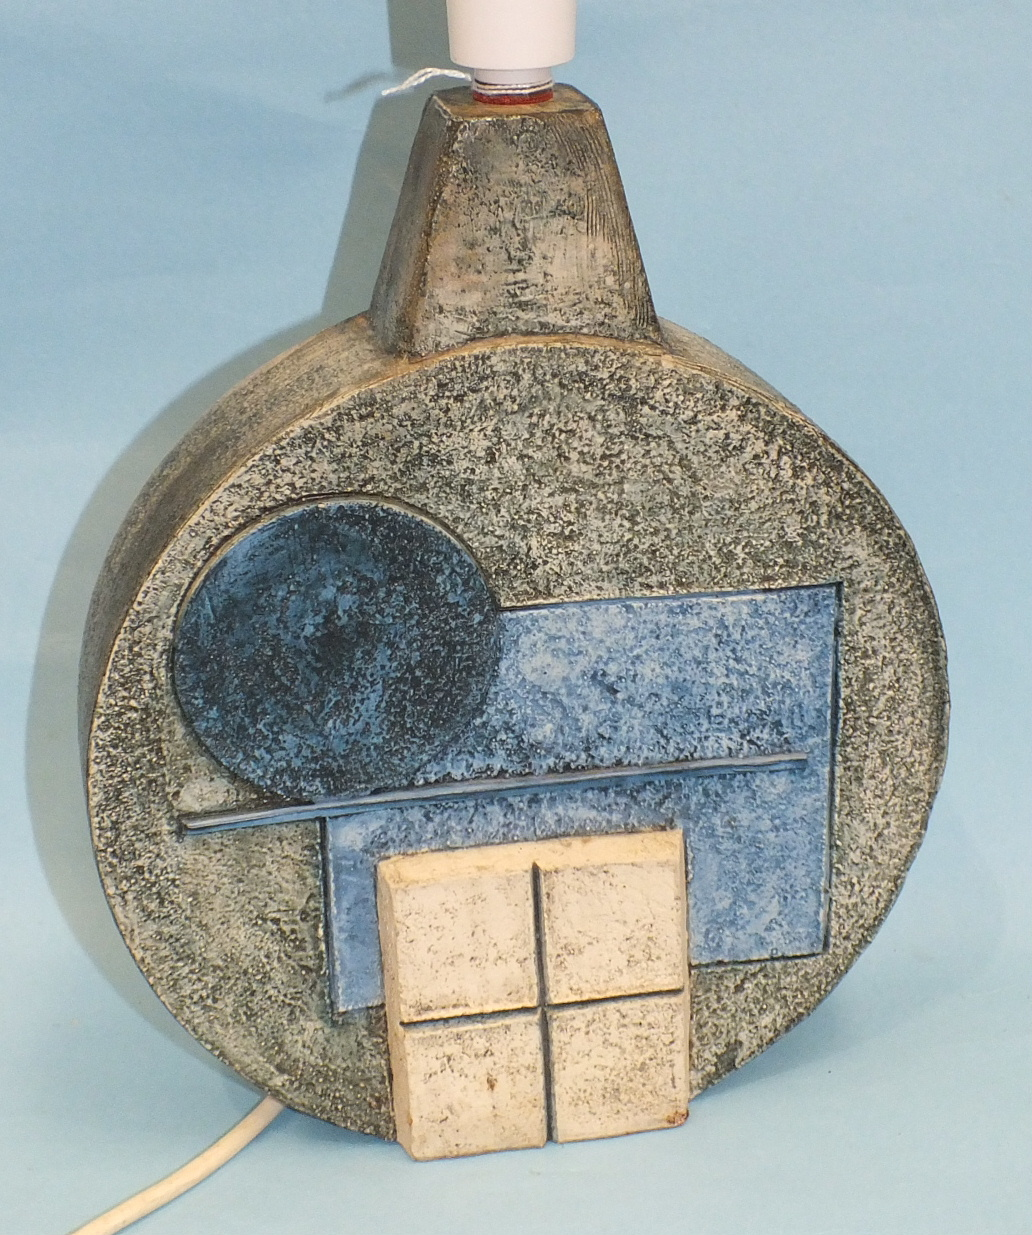 A Troika Pottery wheel table lamp decorated in relief with geometric patterns, 27cm high, factory